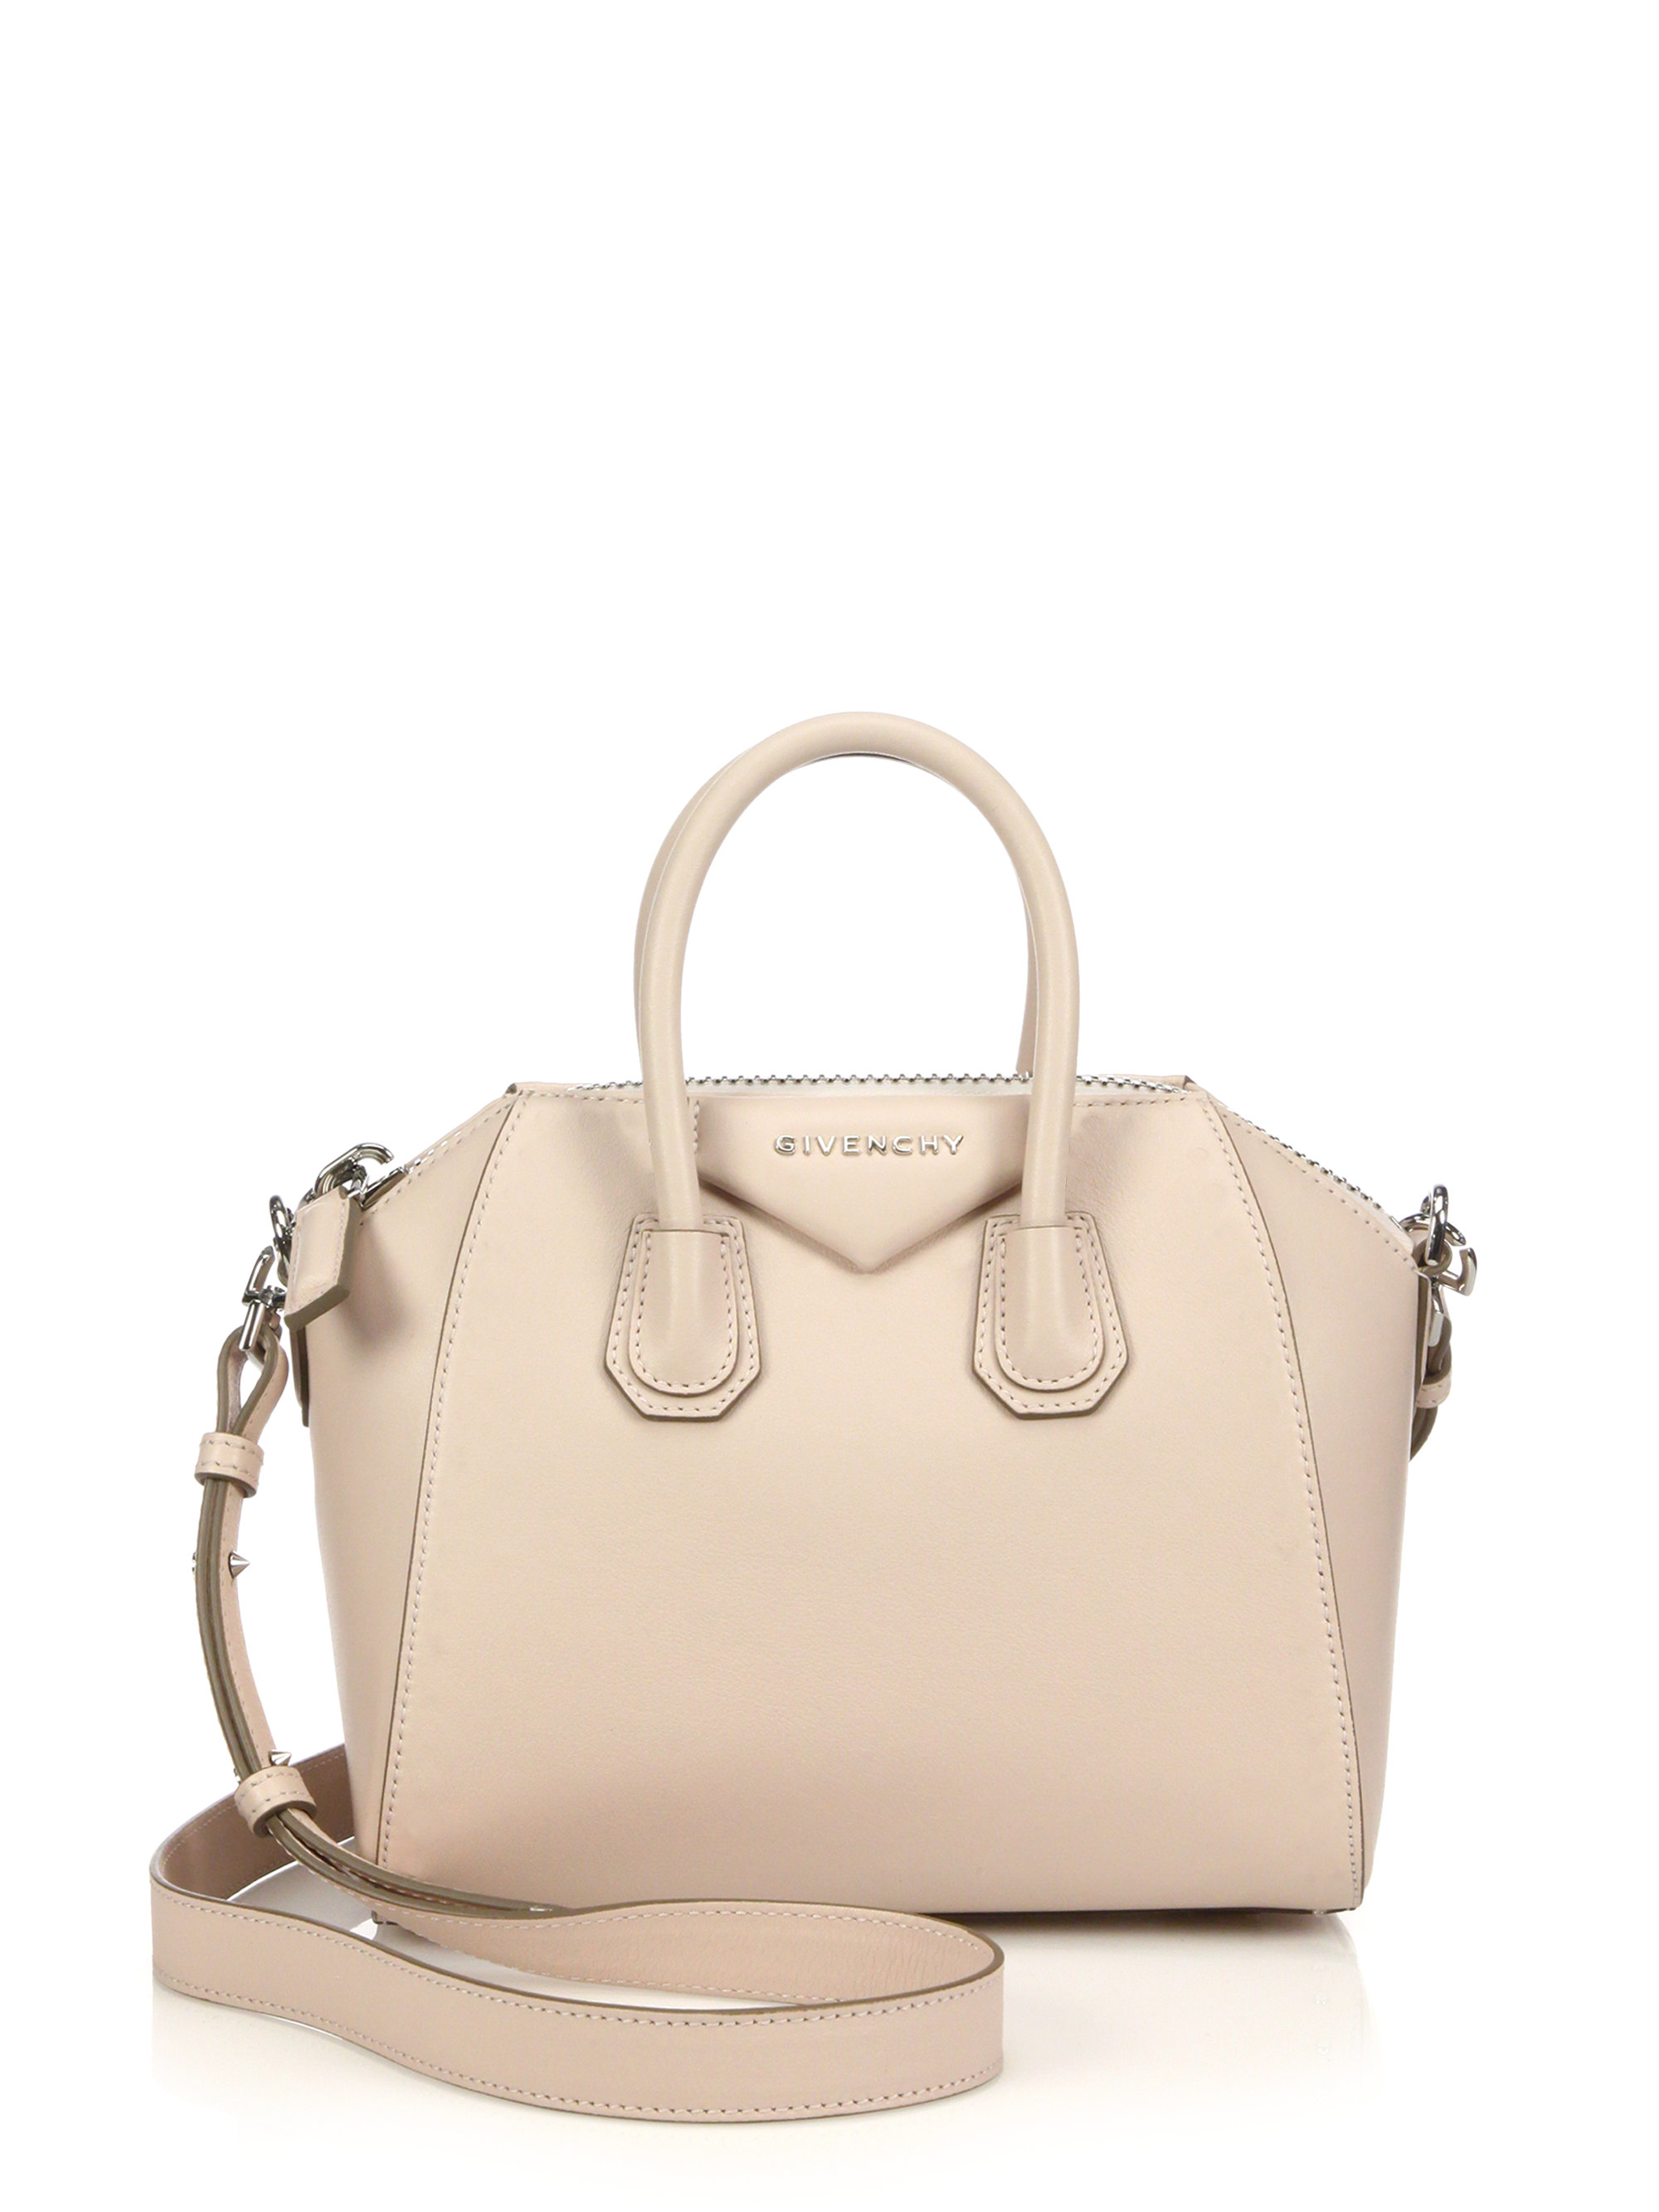 160f0fdf9543 Lyst - Givenchy Antigona Mini Leather Satchel in Natural